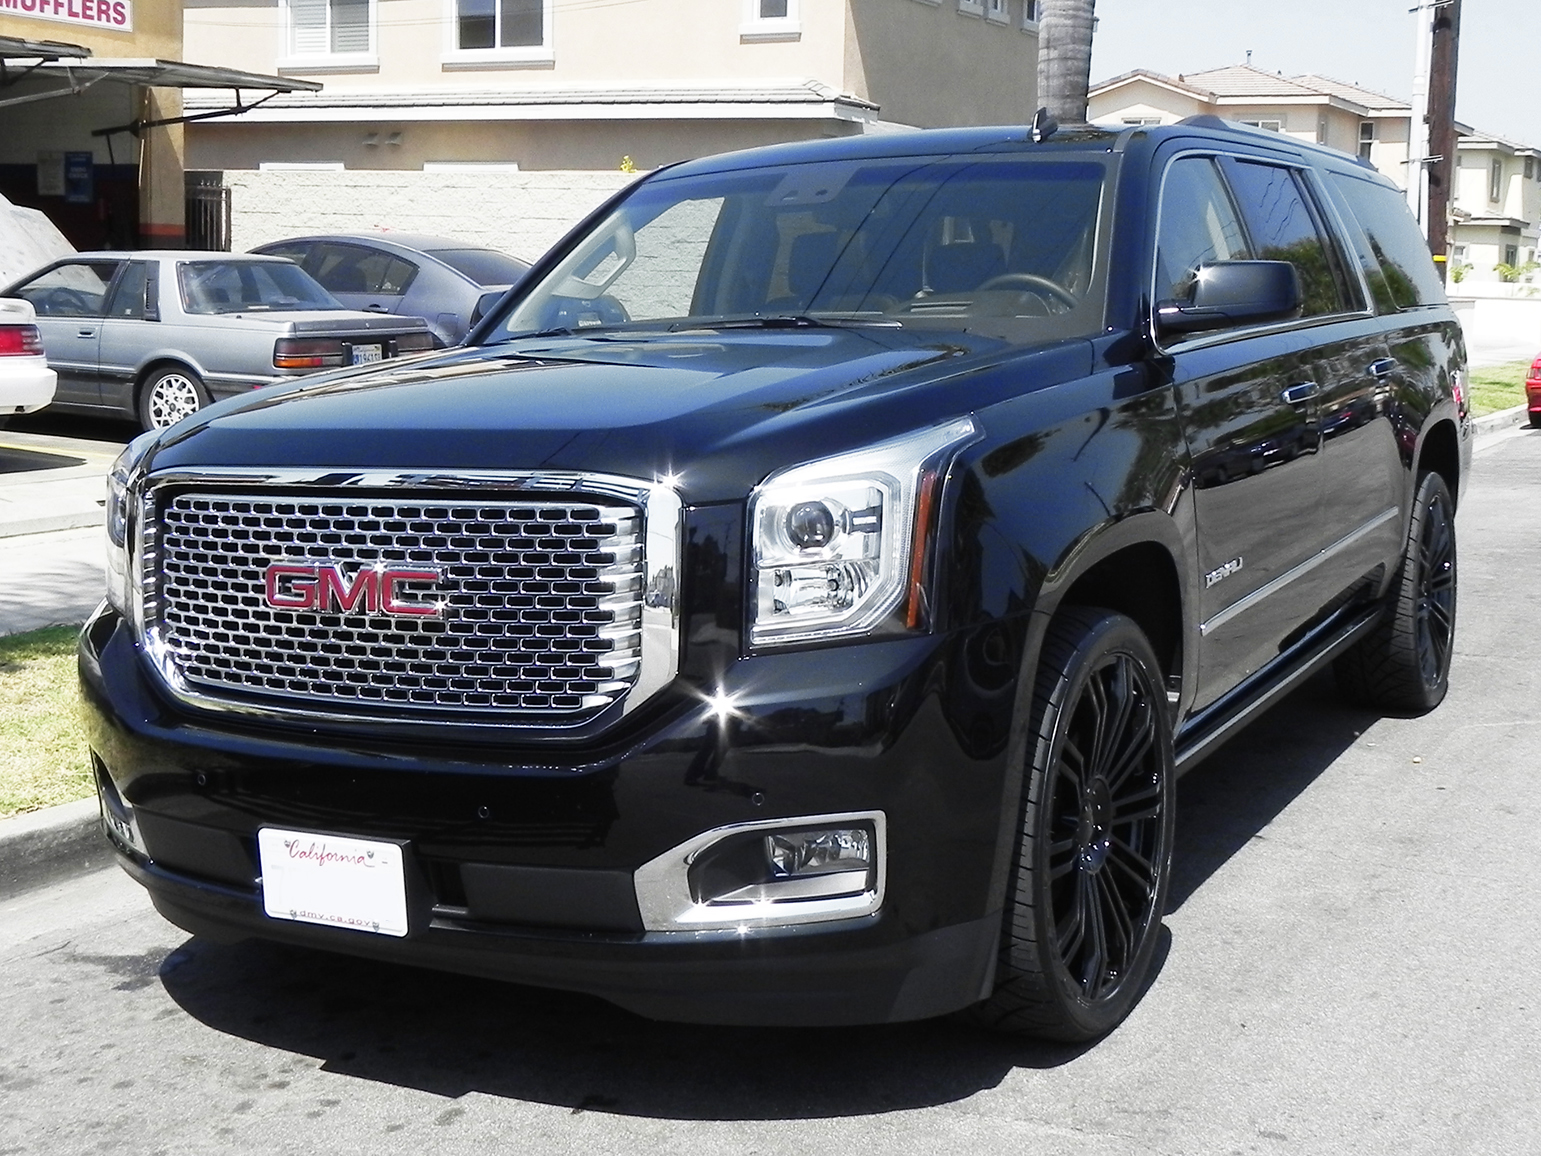 2019 GMC Yukon | Car Photos Catalog 2019